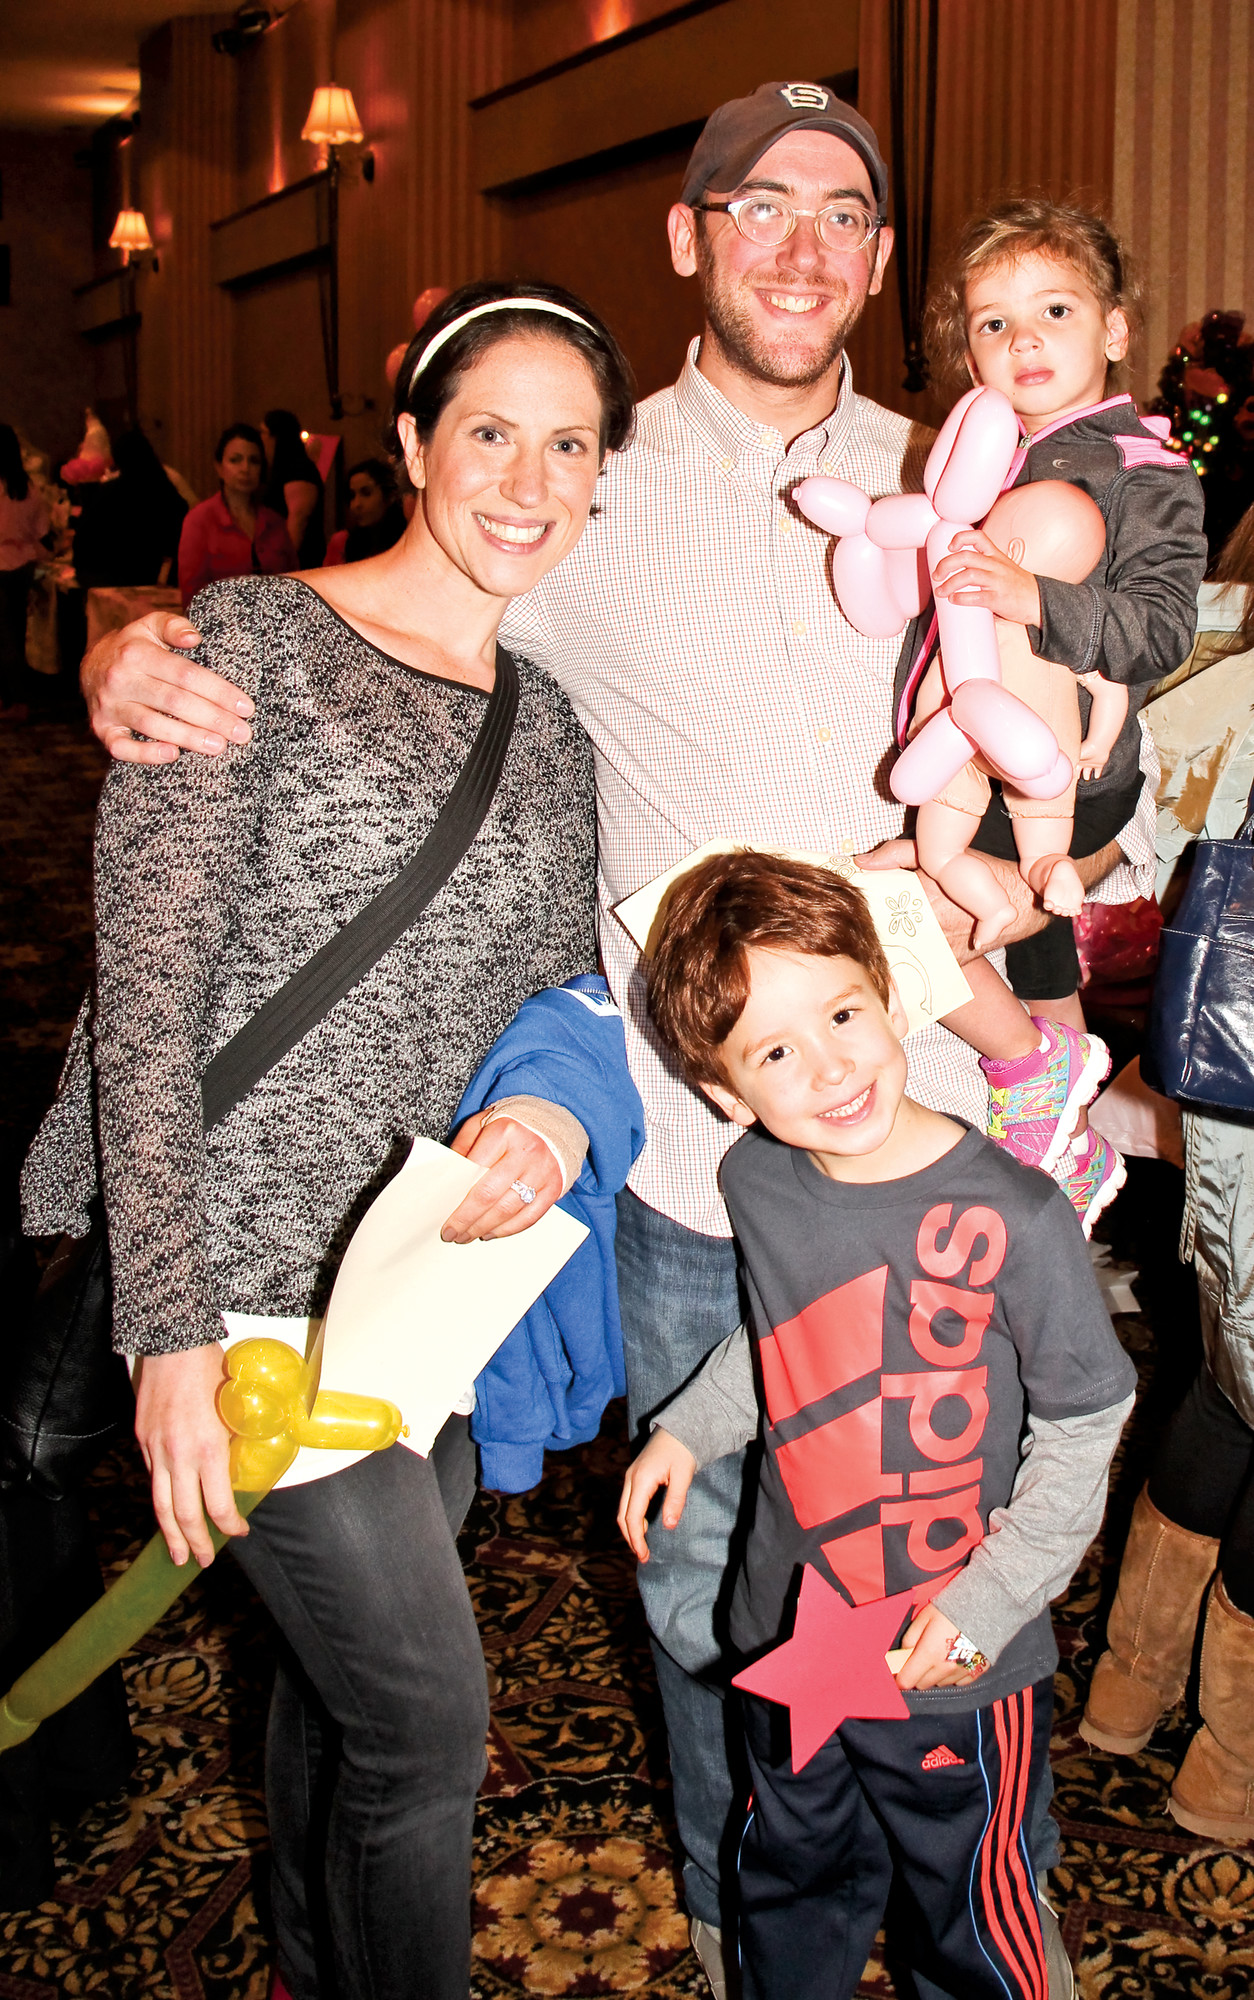 Breast Cancer Fundraiser Unites The Community